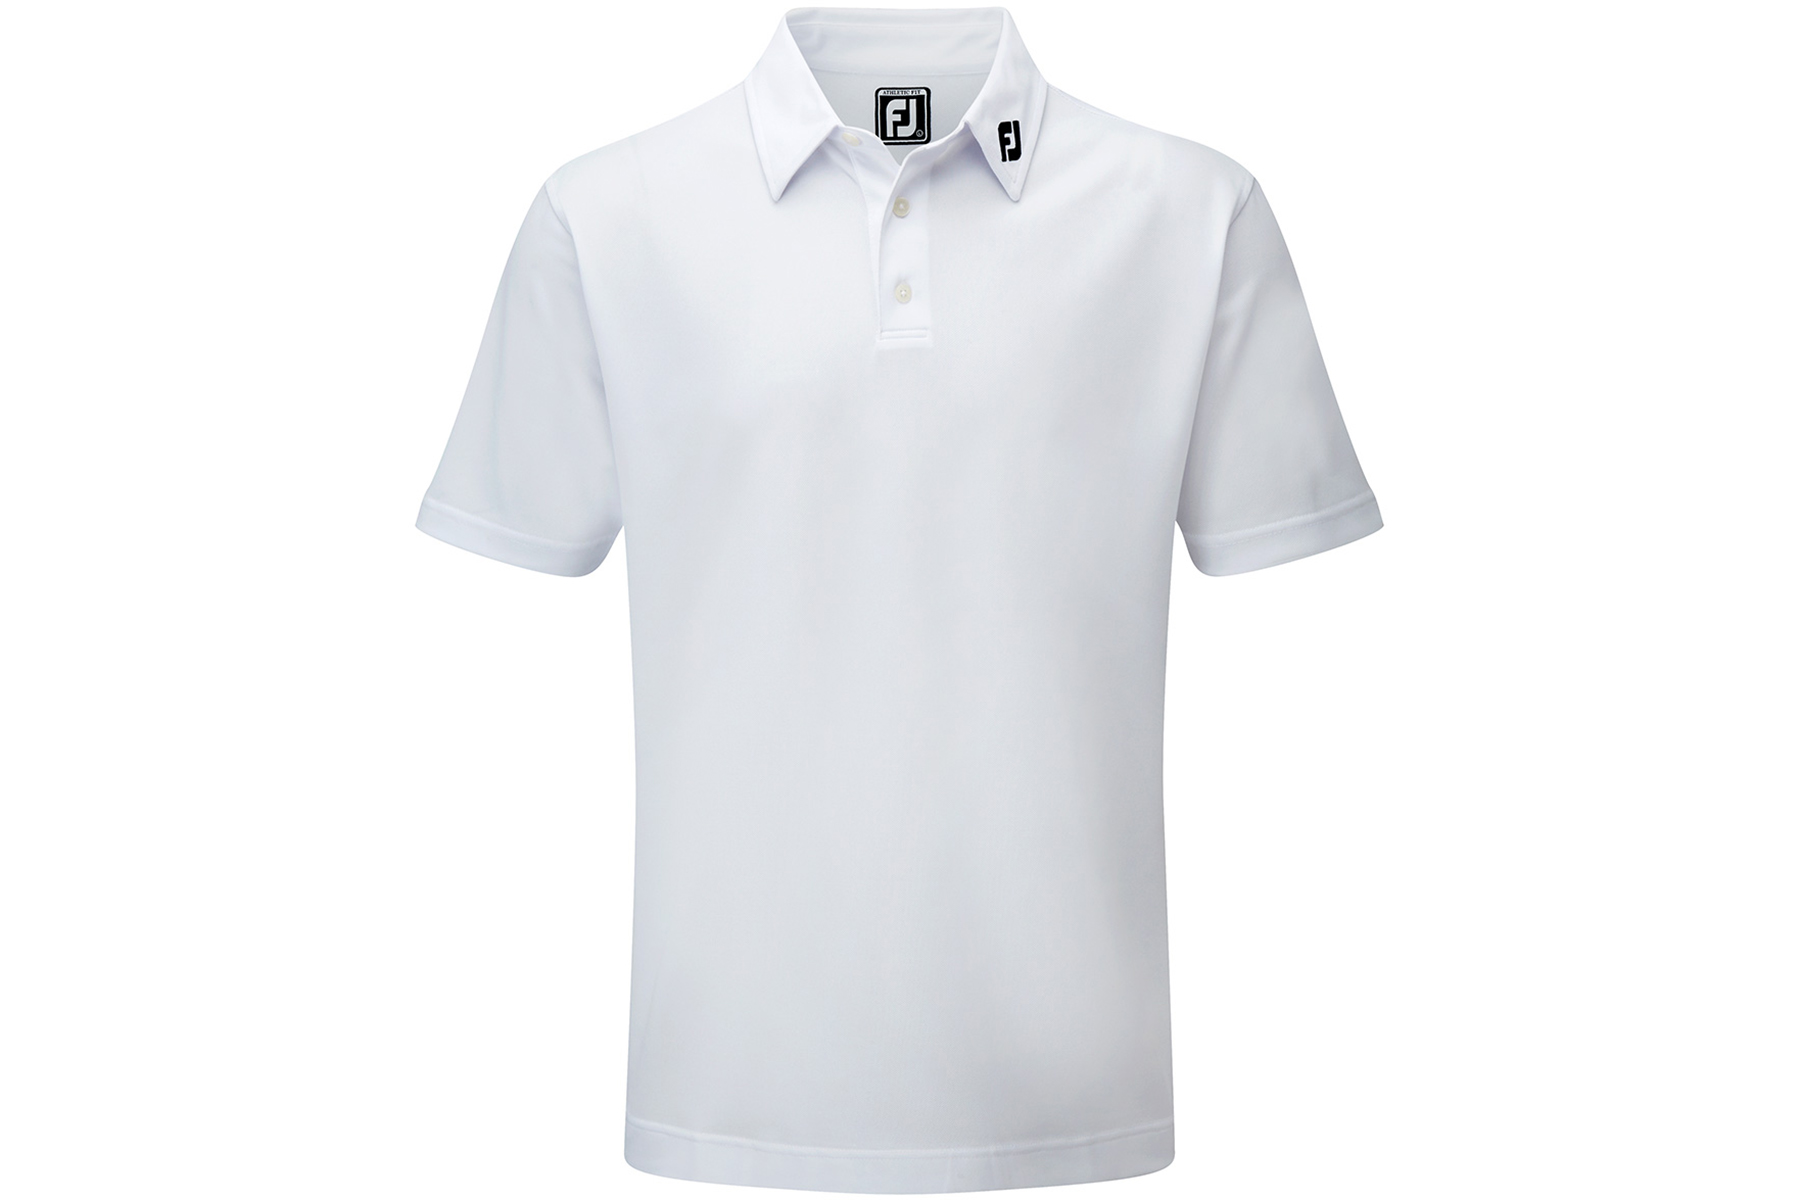 Discount Golf Apparel on Sale at GlobalGolf.com